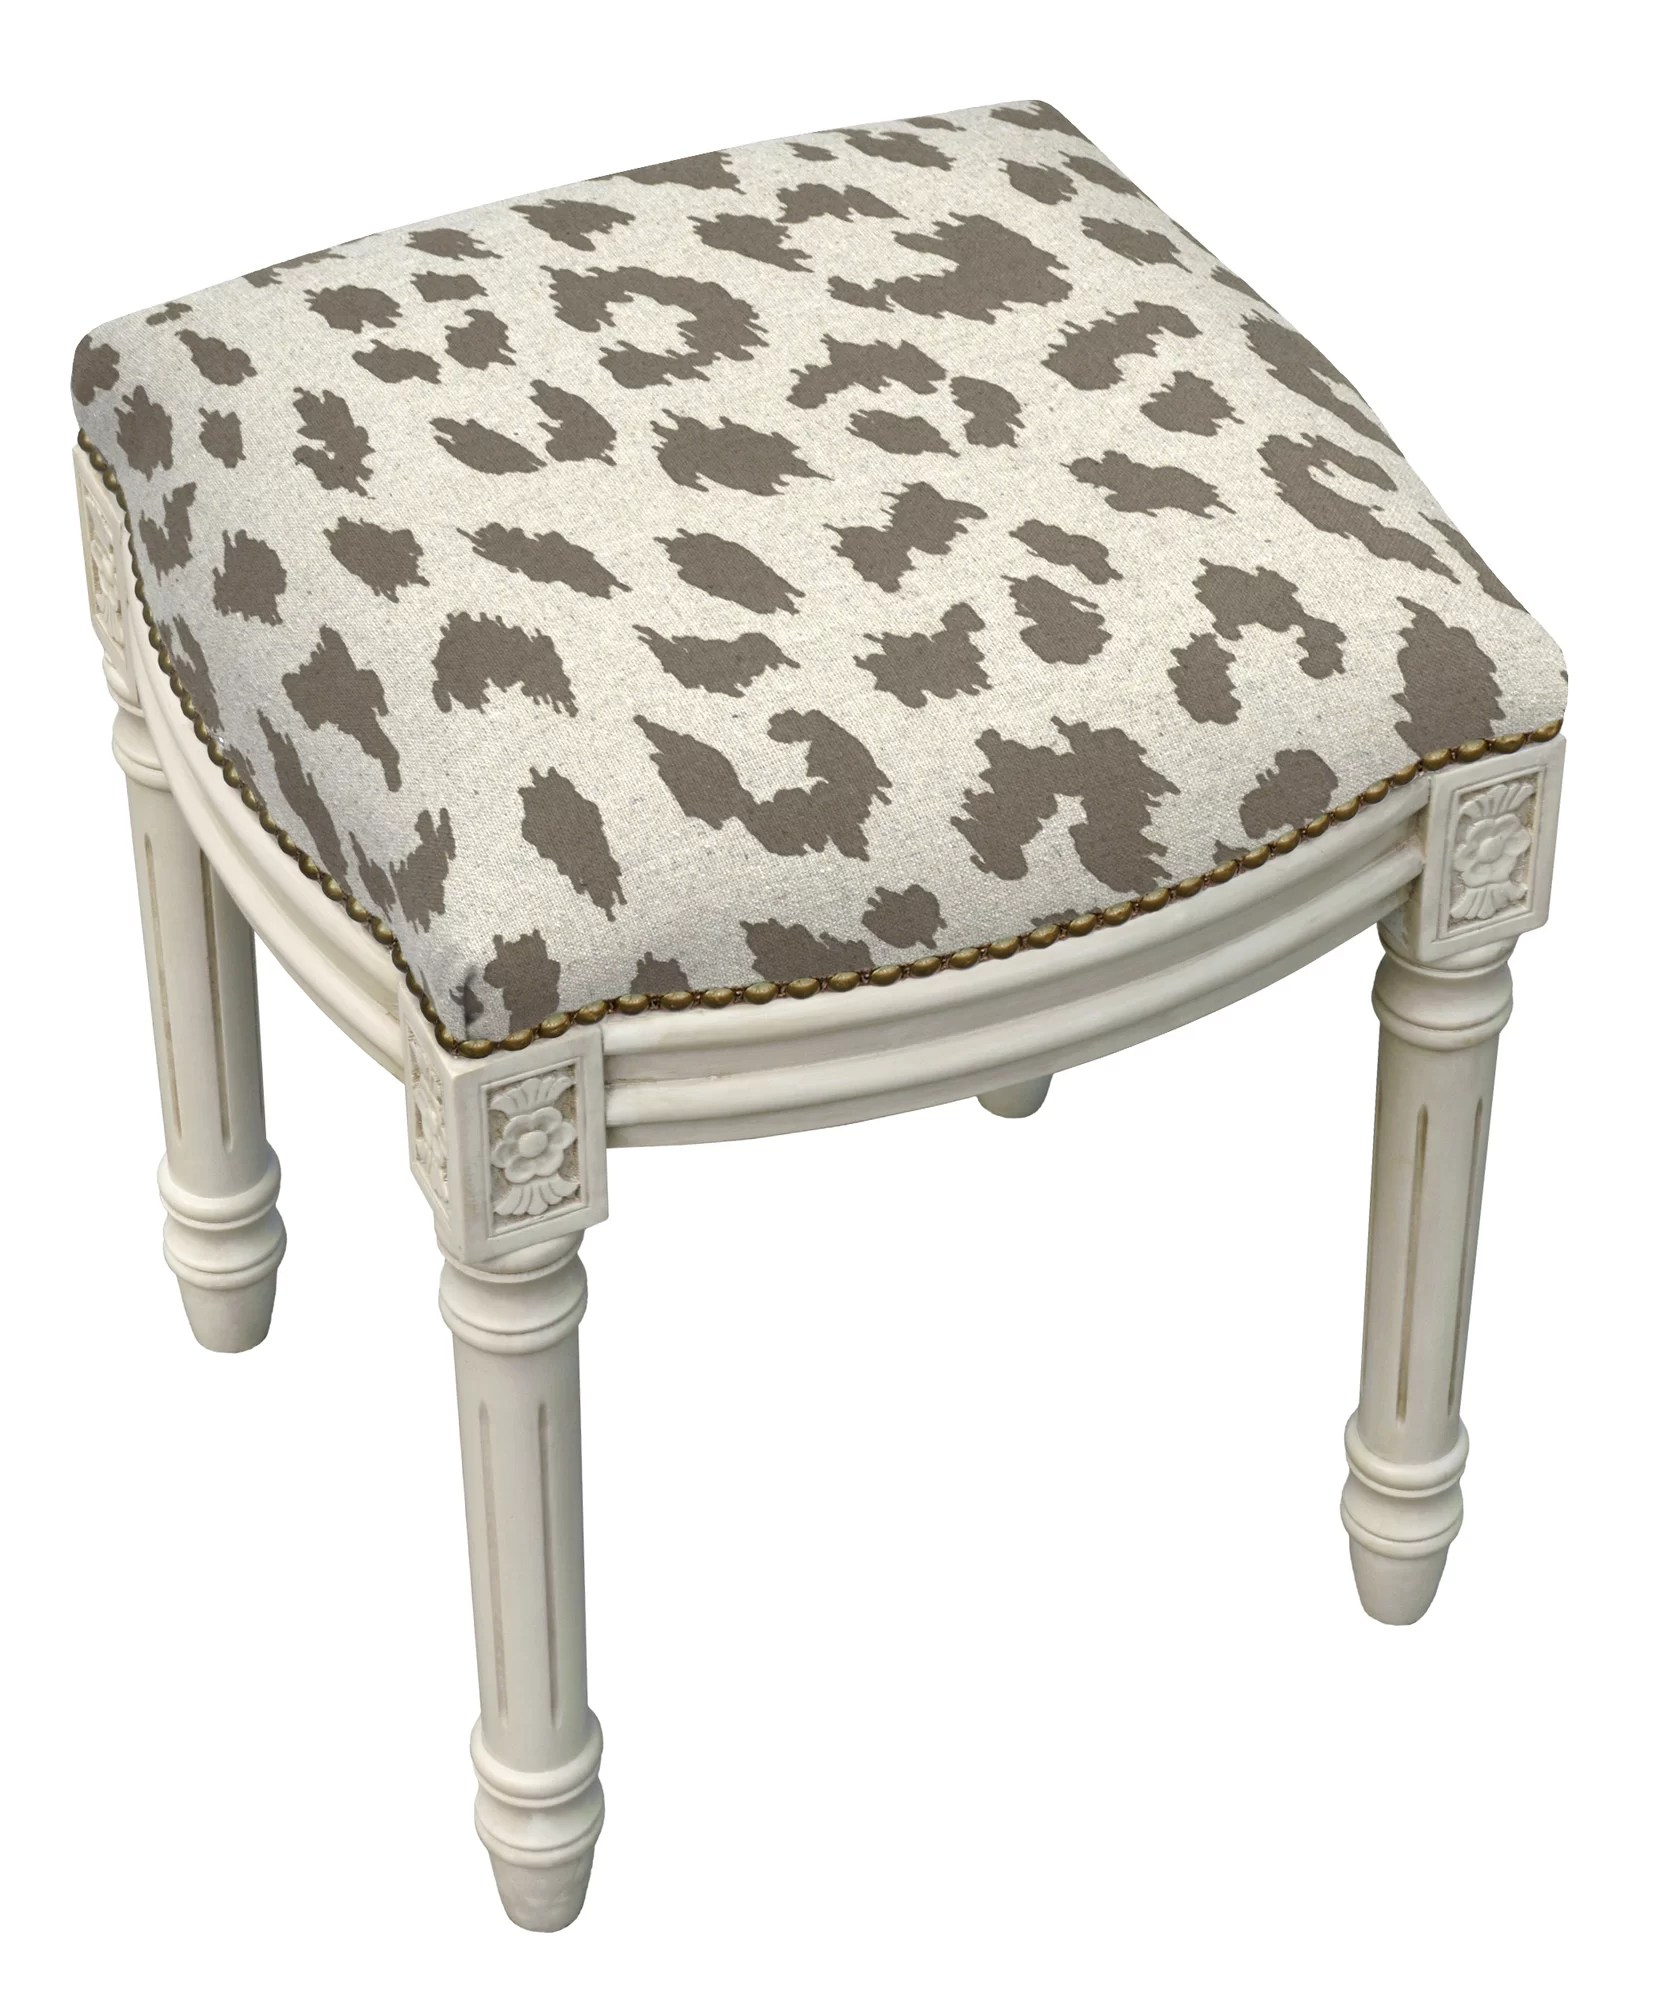 Upholstered Vanity Chair 123 Creations Animal Print Cheetah Linen Upholstered